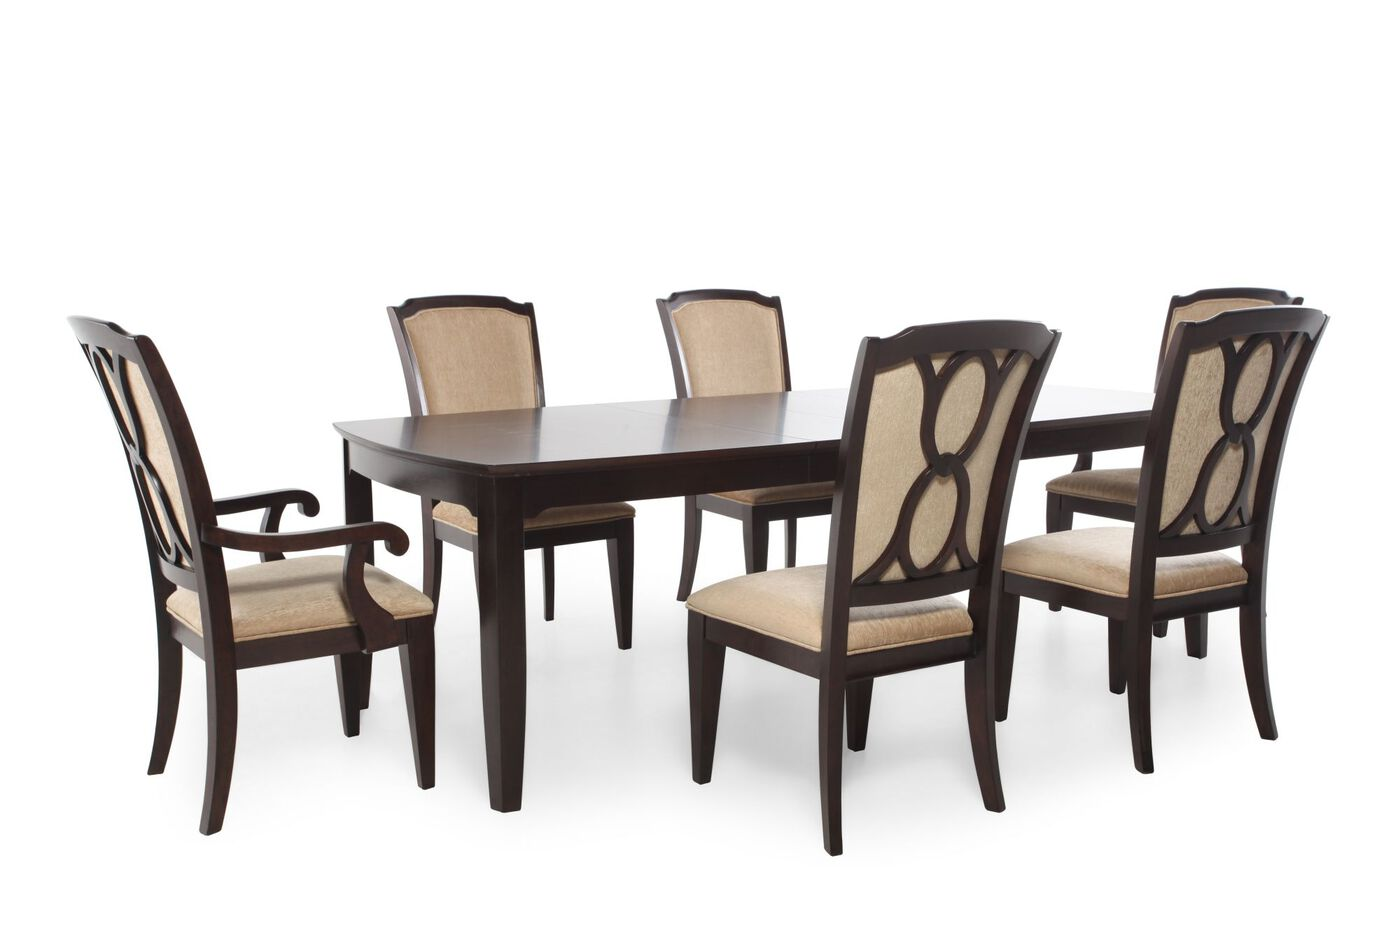 mathis brothers dining room tables and chairs. legacy sophia seven-piece dining set mathis brothers room tables and chairs s